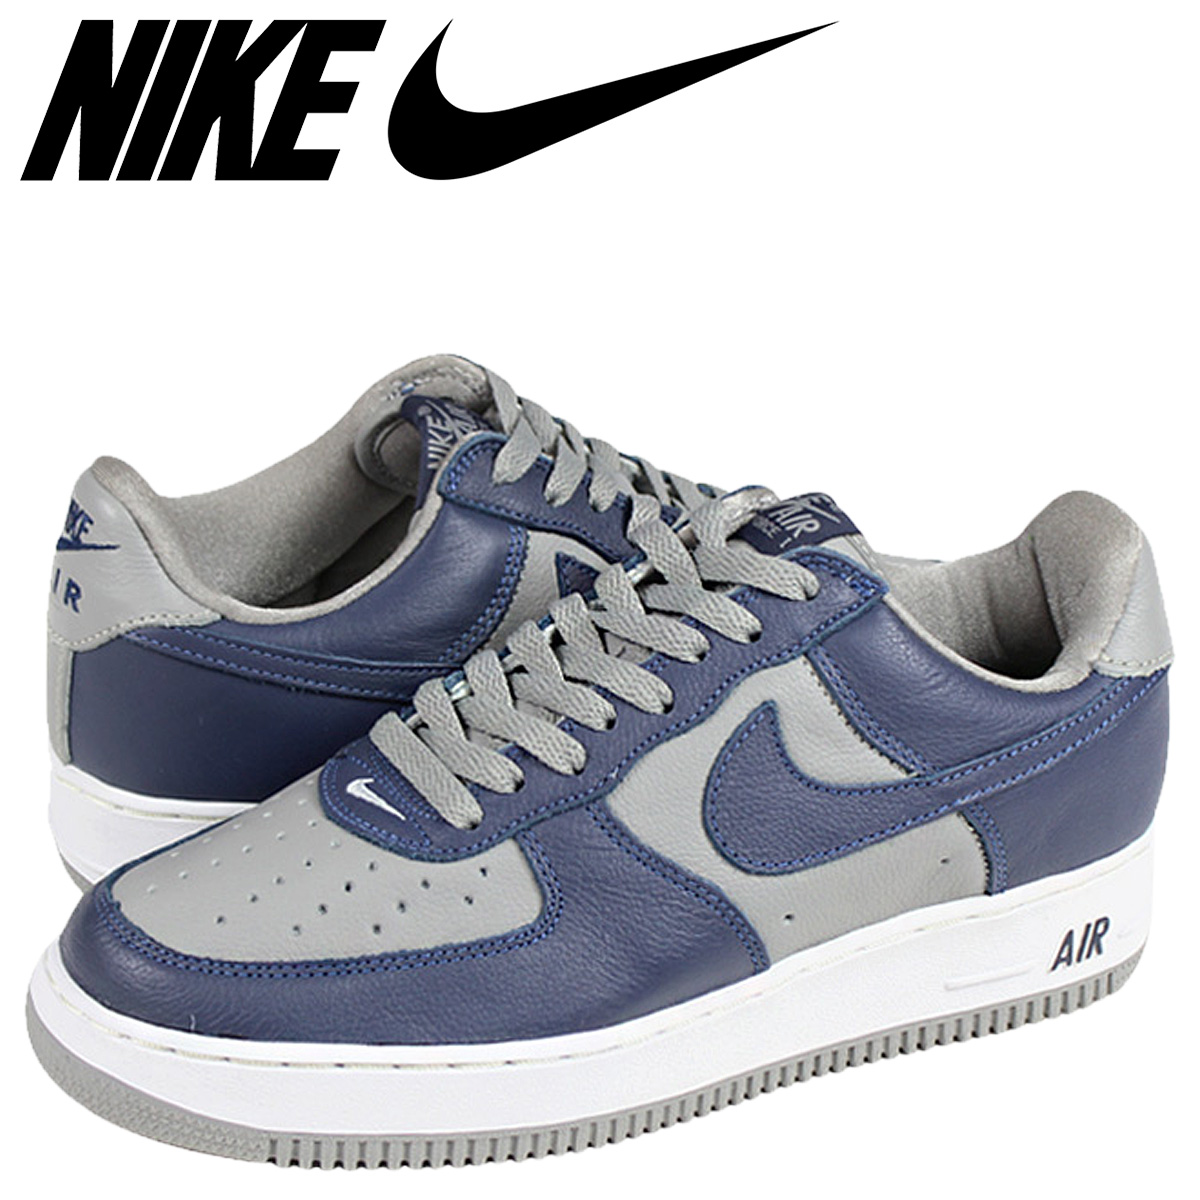 Nike NIKE air force sneakers AIR FORCE 1 LOW air force atto MOS suggestion color 630,033 044 gray men